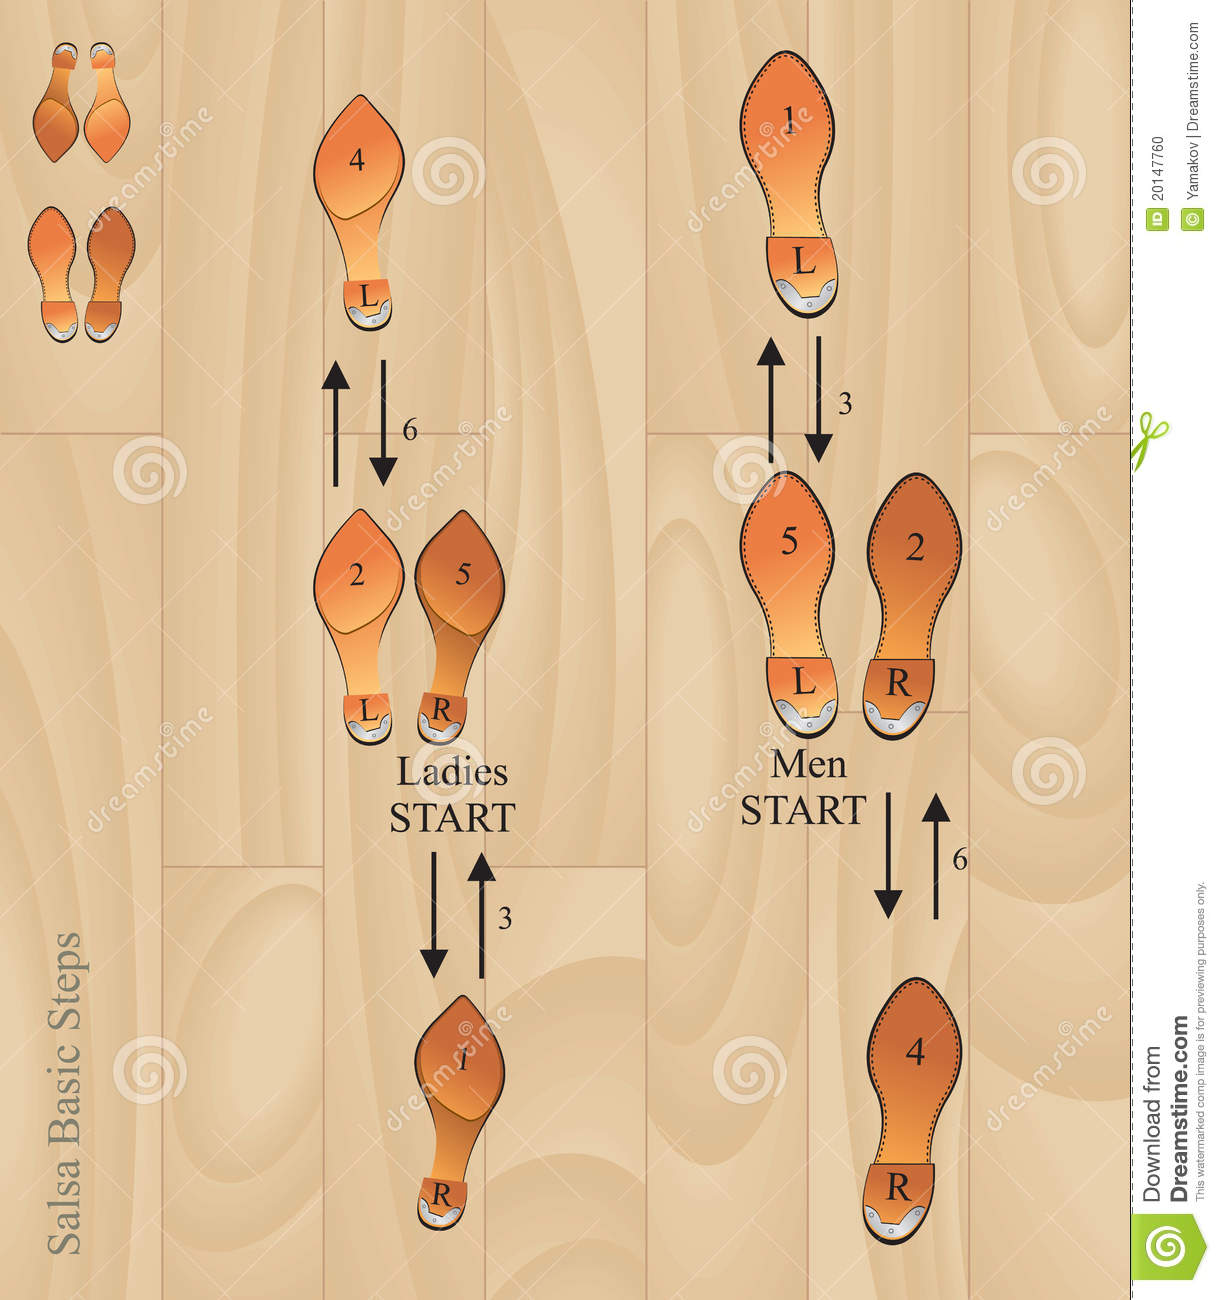 two step dance diagram how to design architecture basic rumba steps positions